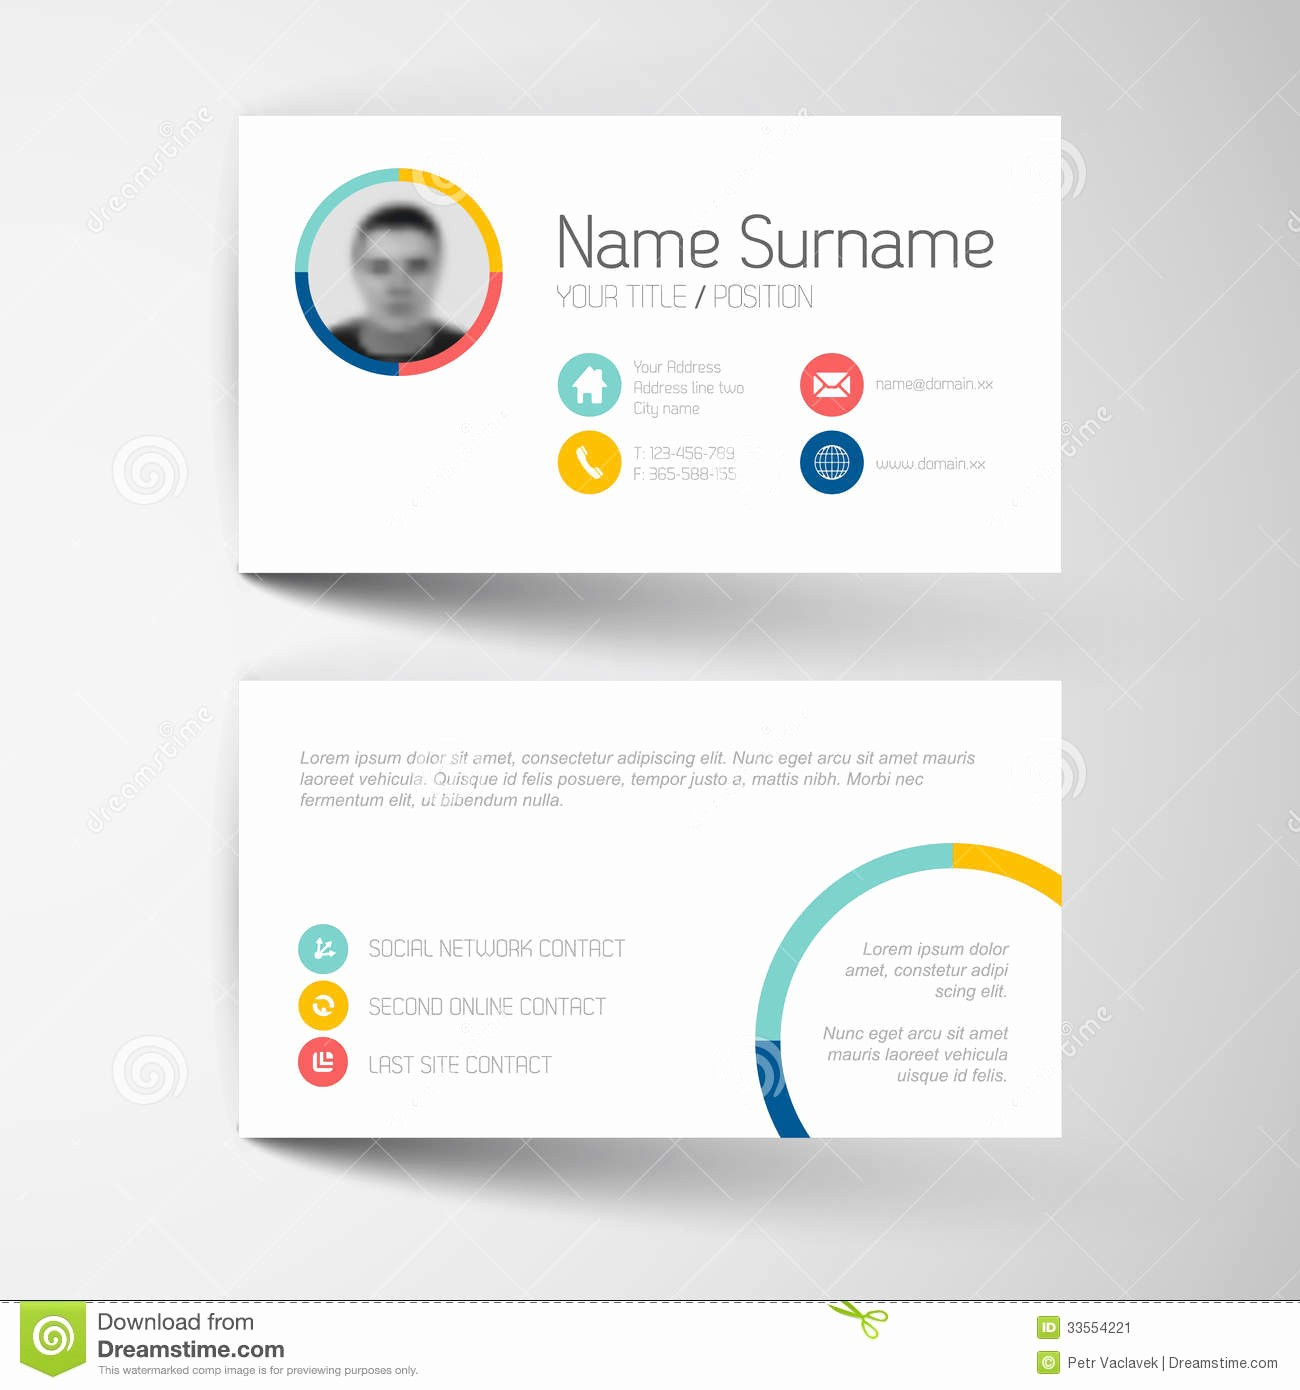 Word Document Business Card Template Fresh Online Business Card Template Word Free Designs 3